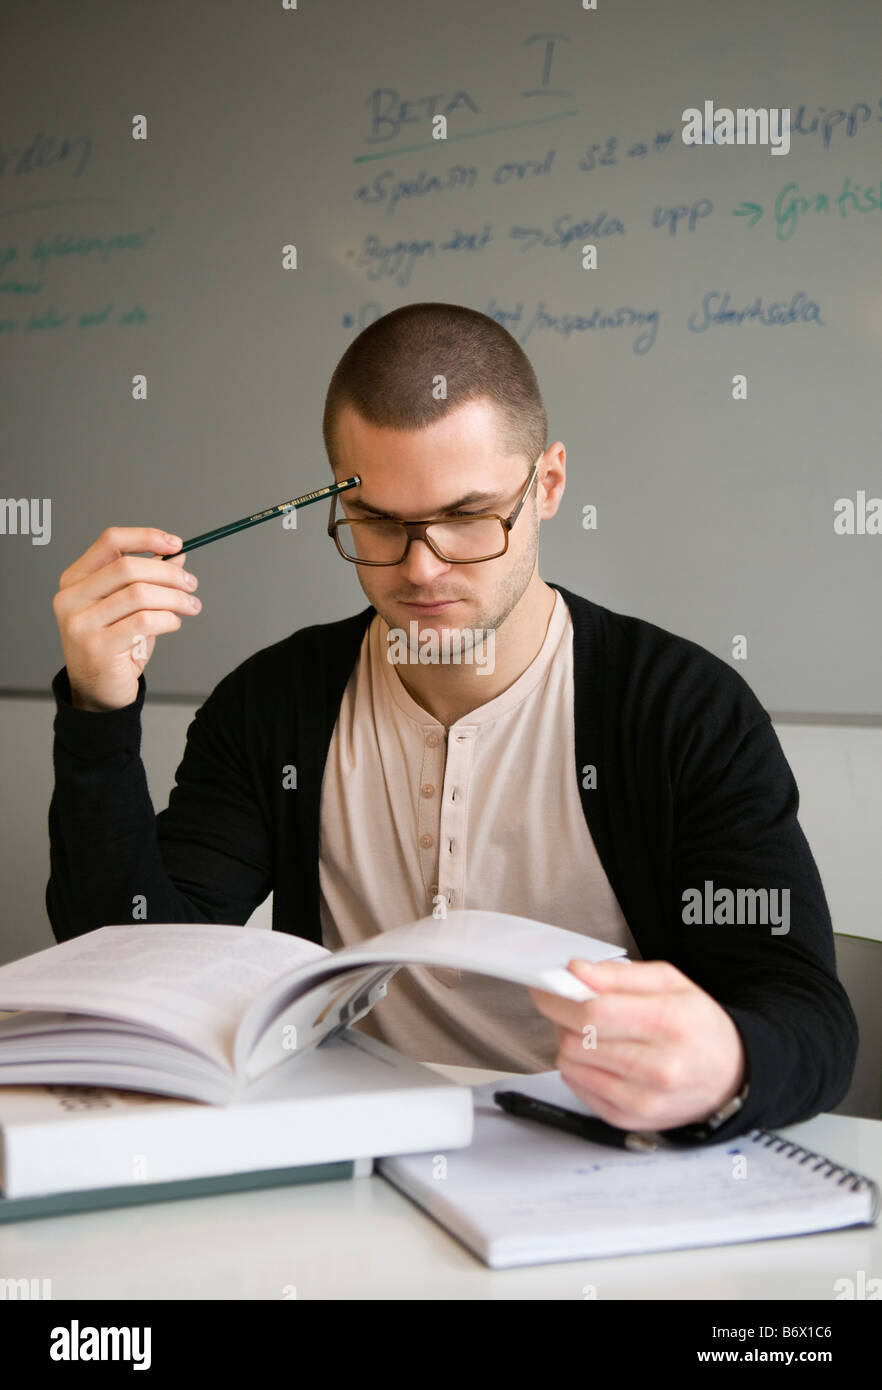 Guy concentrating on his studies - Stock Image